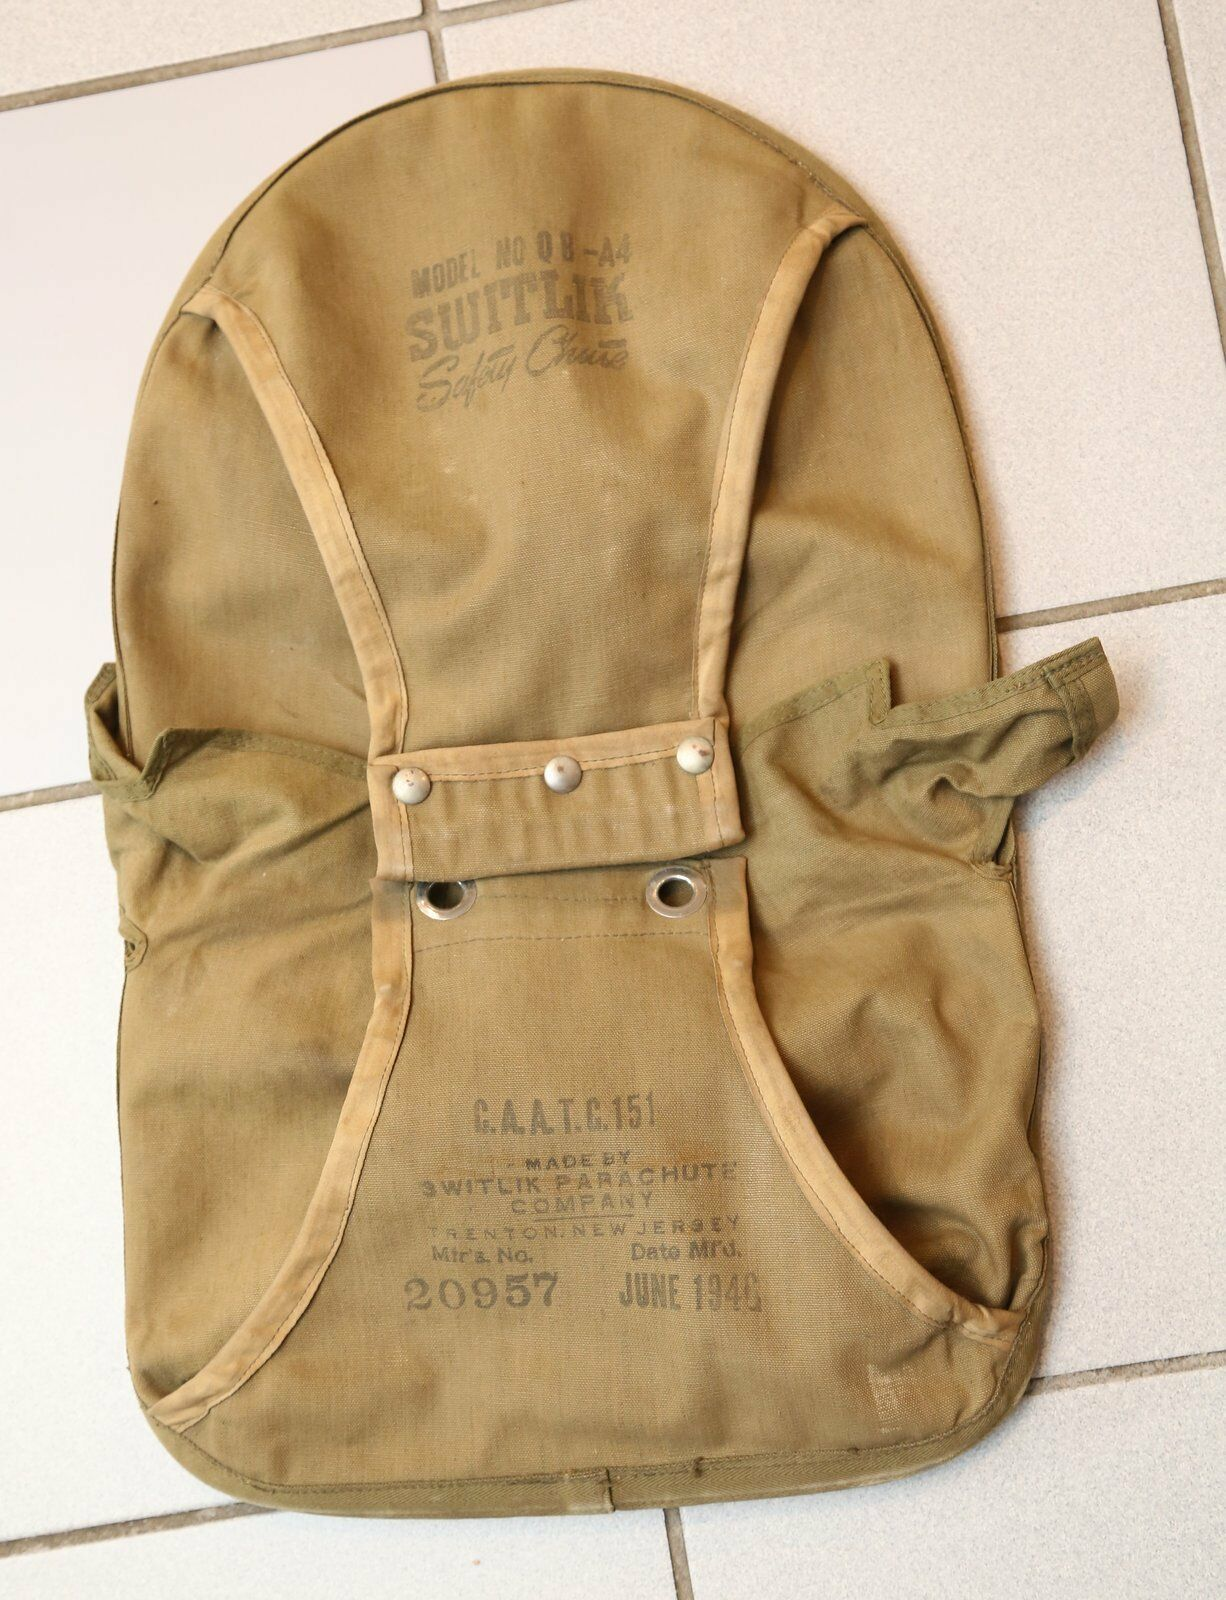 1946 Switlik Safety Chute parachute container  QBA4  with original data autod